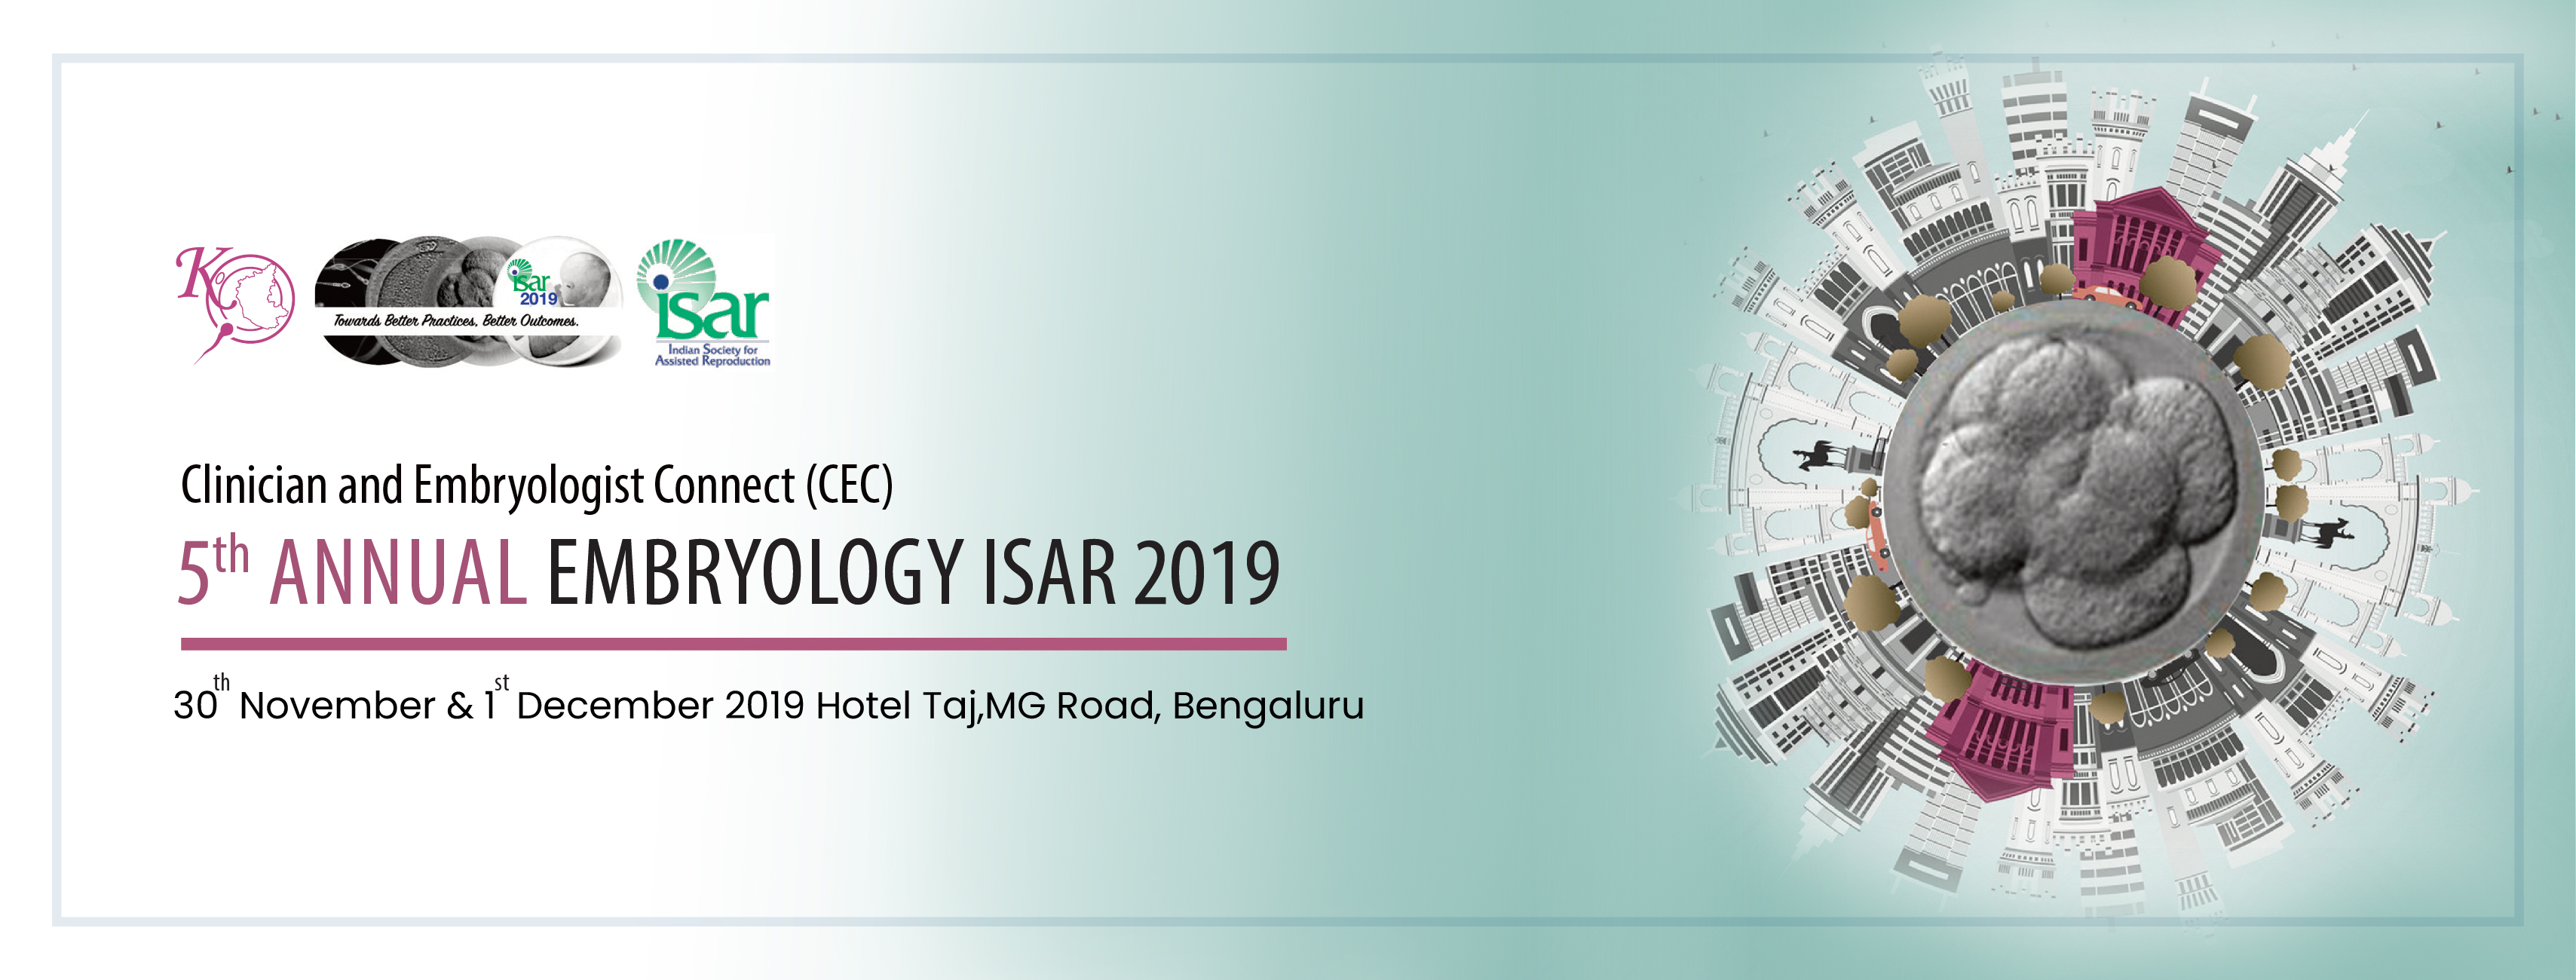 EMBRYOLOGY ISAR 2019